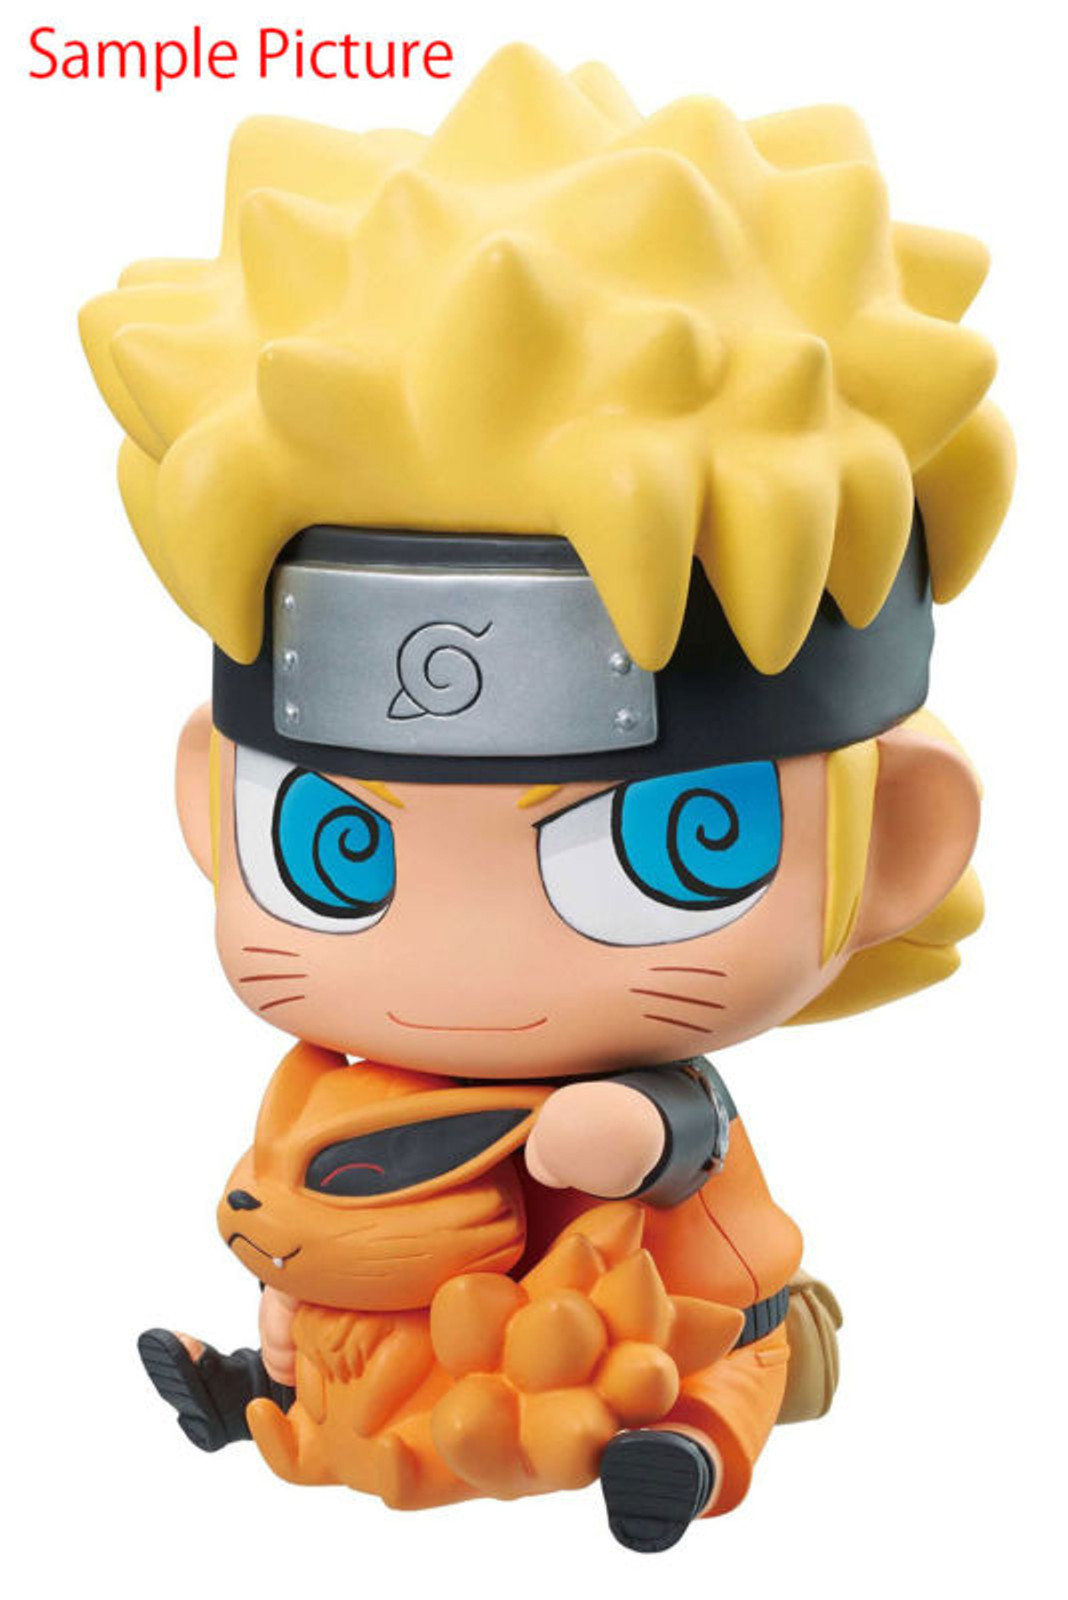 NARUTO Naruto Uzumaki & Nine-Tailed Demon Fox Kurama Chimi Mega Soft Vinyl Series Figure Megahouse JAPAN ANIME MANGA